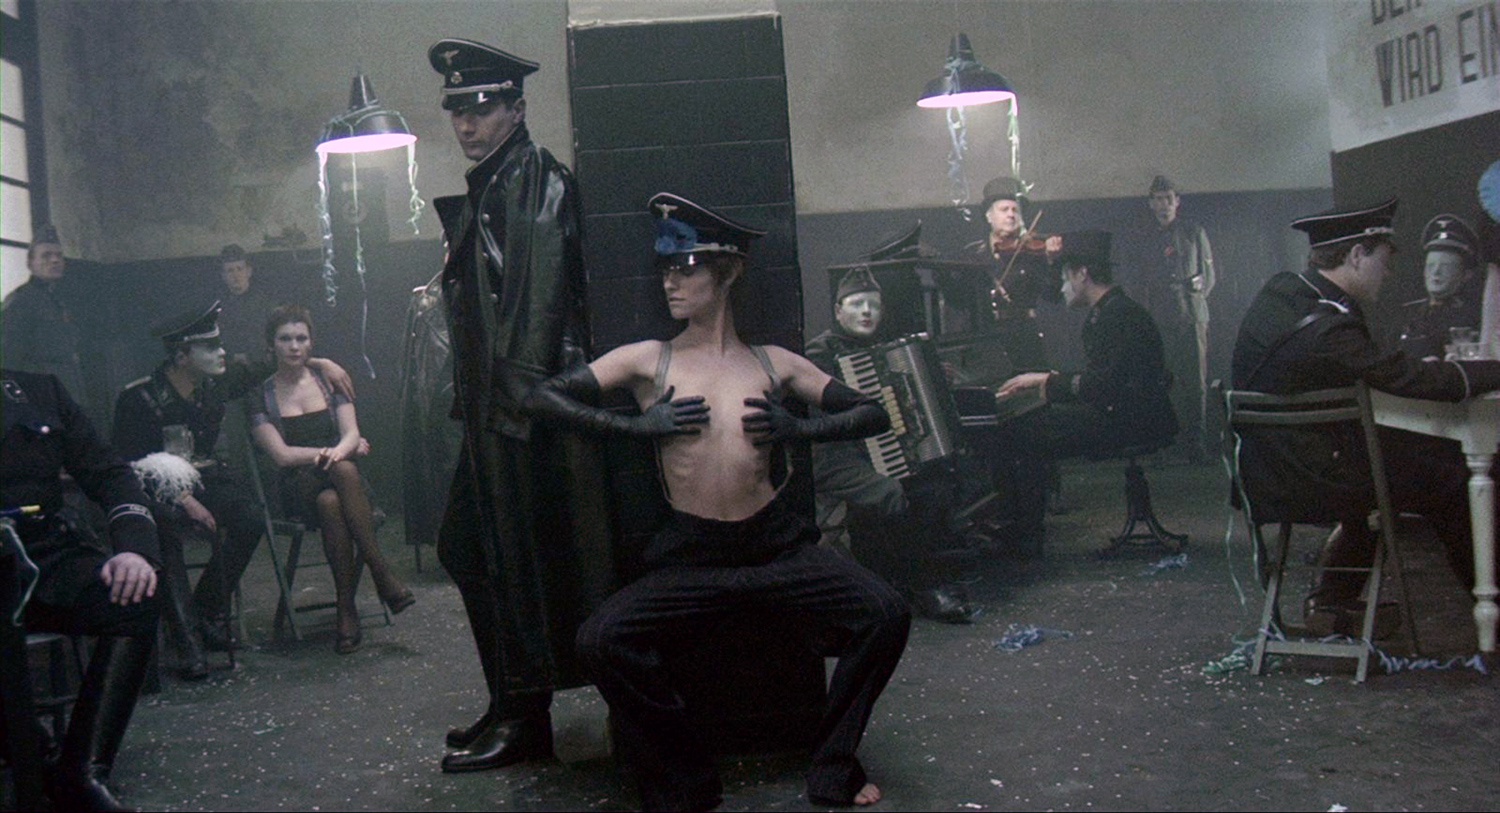 BDSM Movies - The Night Porter, woman in BDSM gear and soldiers